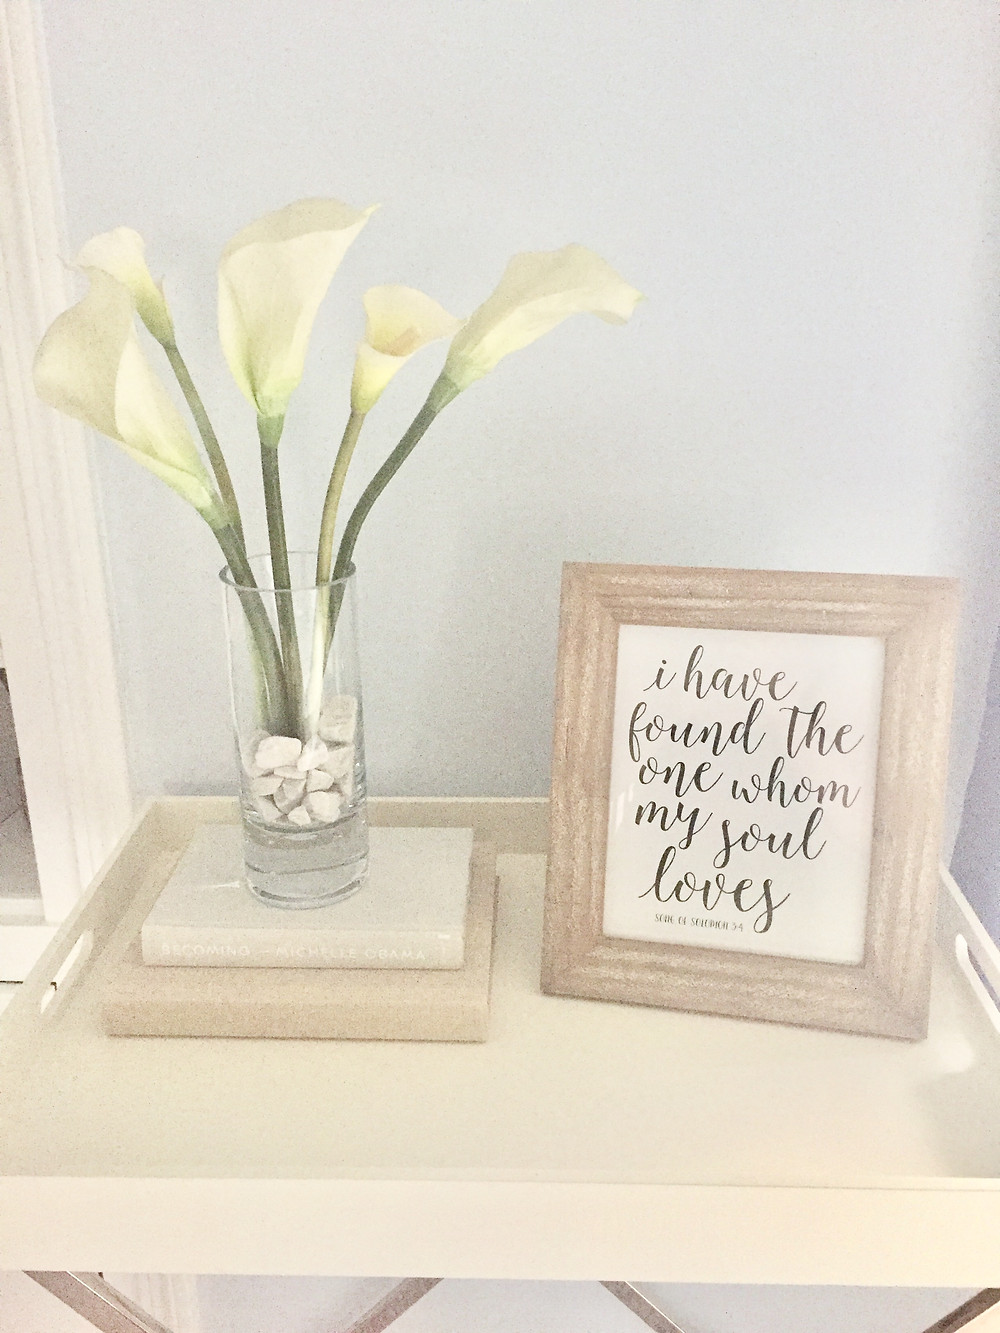 Wood tray and stand with vase of flowers books framed photo